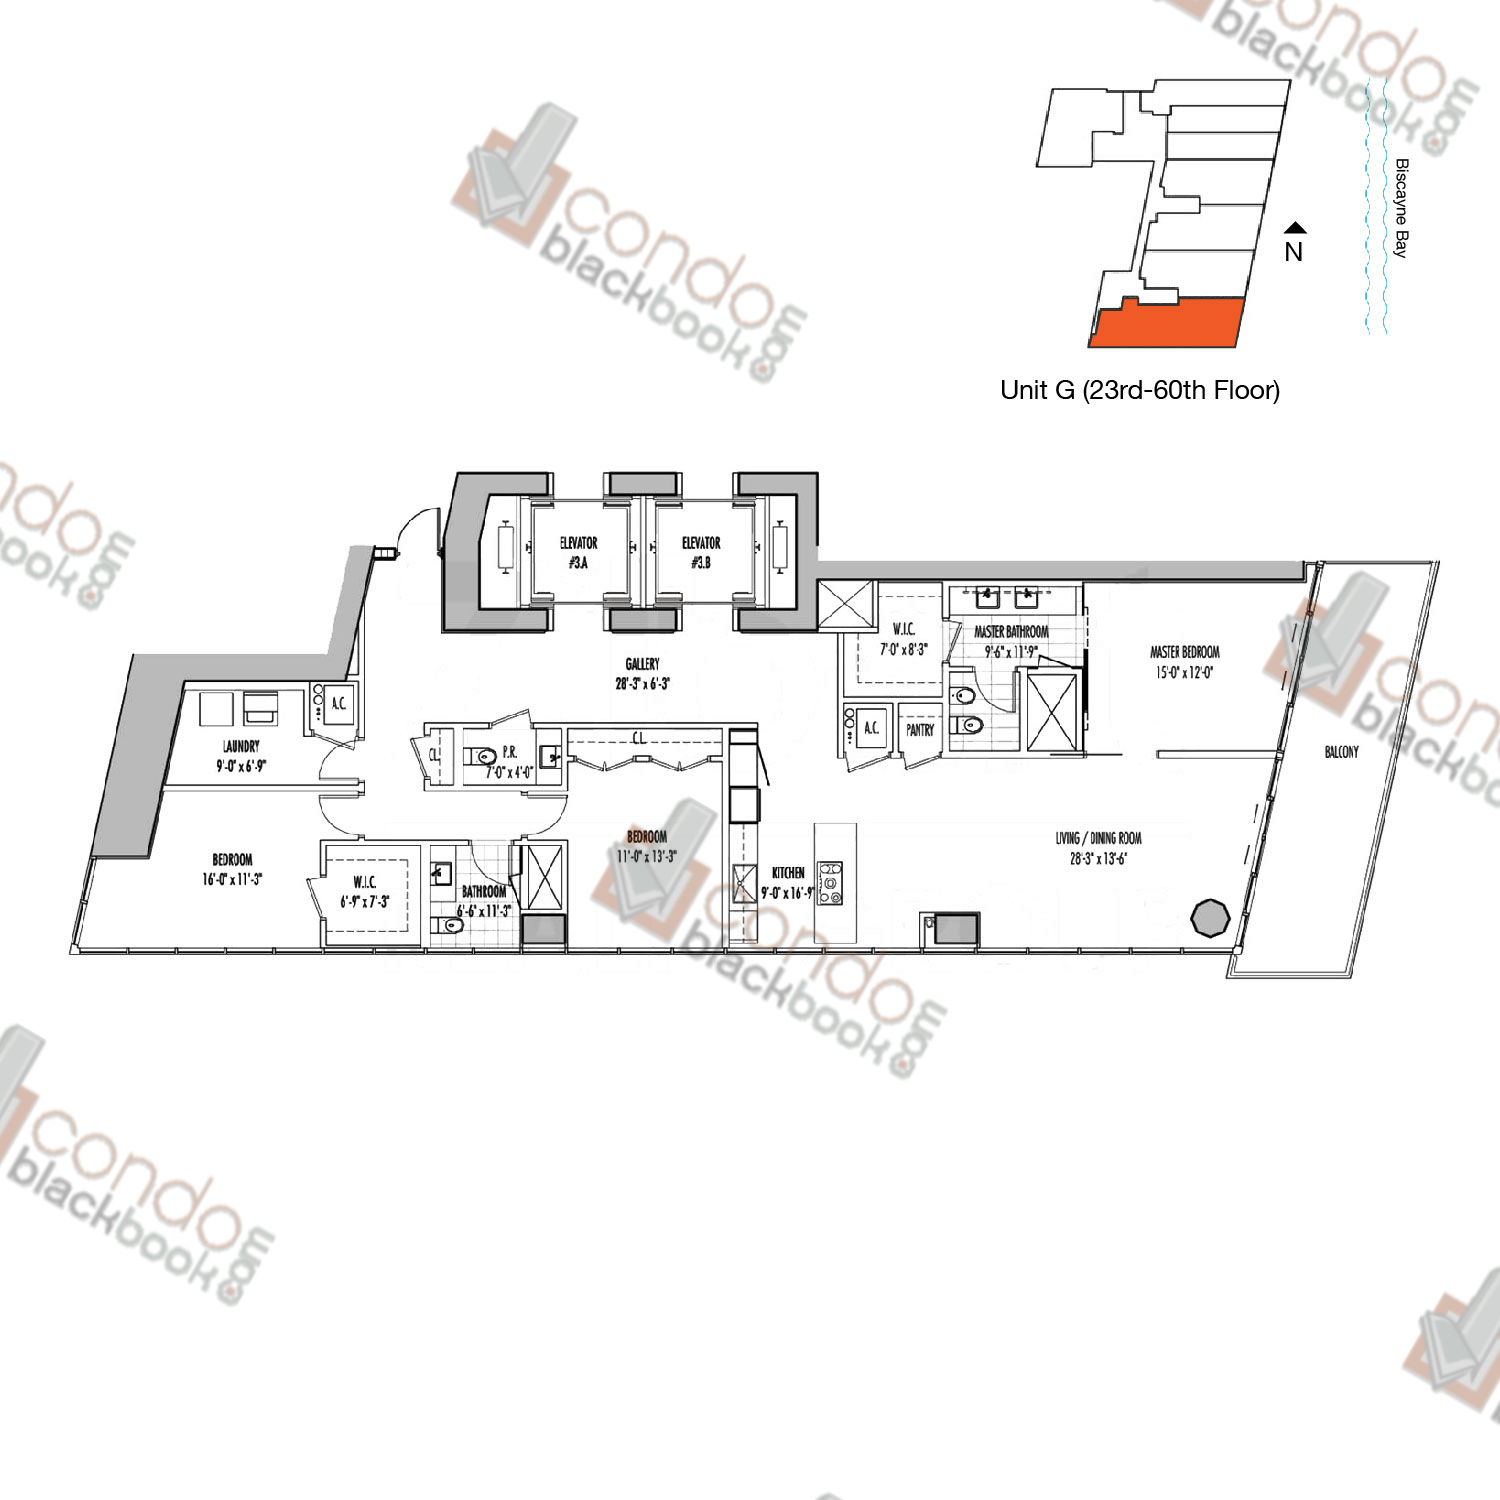 Floor plan for Marquis Downtown Miami Miami, model G, line 01, 3/2.5 bedrooms, 2,106 sq ft